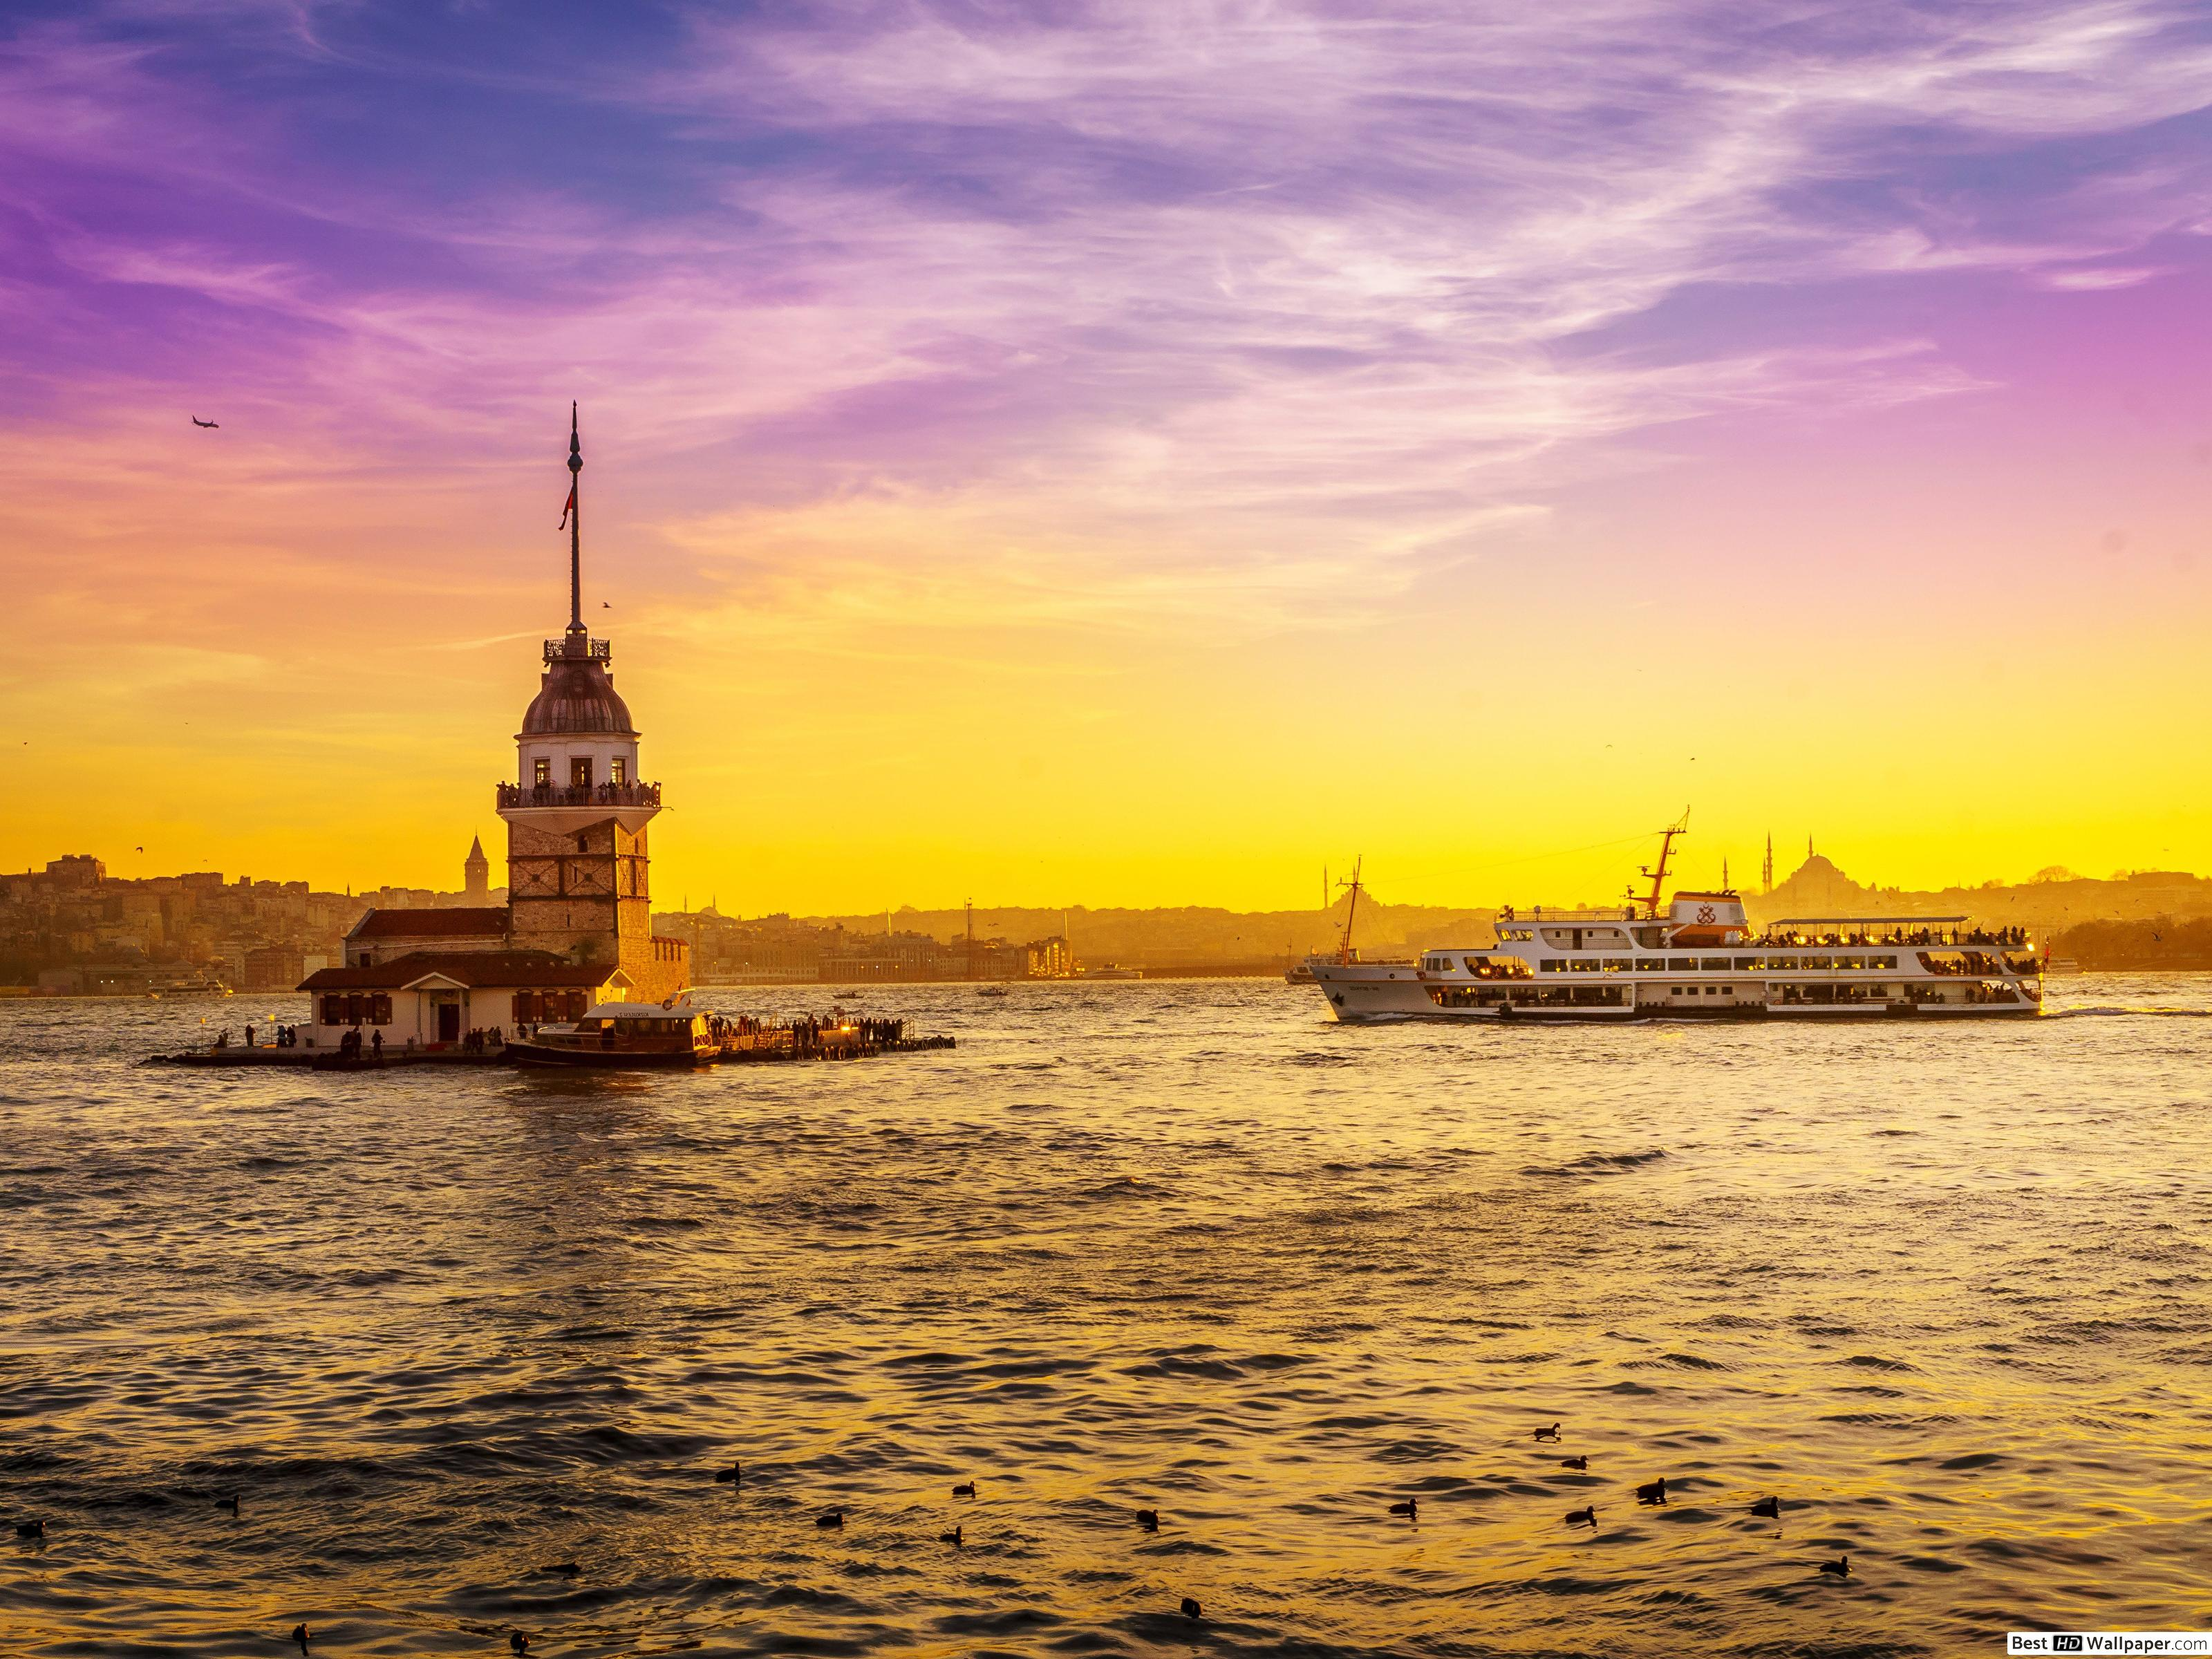 maiden-s-tower-and-istanbul-wallpaper-3200x2400-21436_29